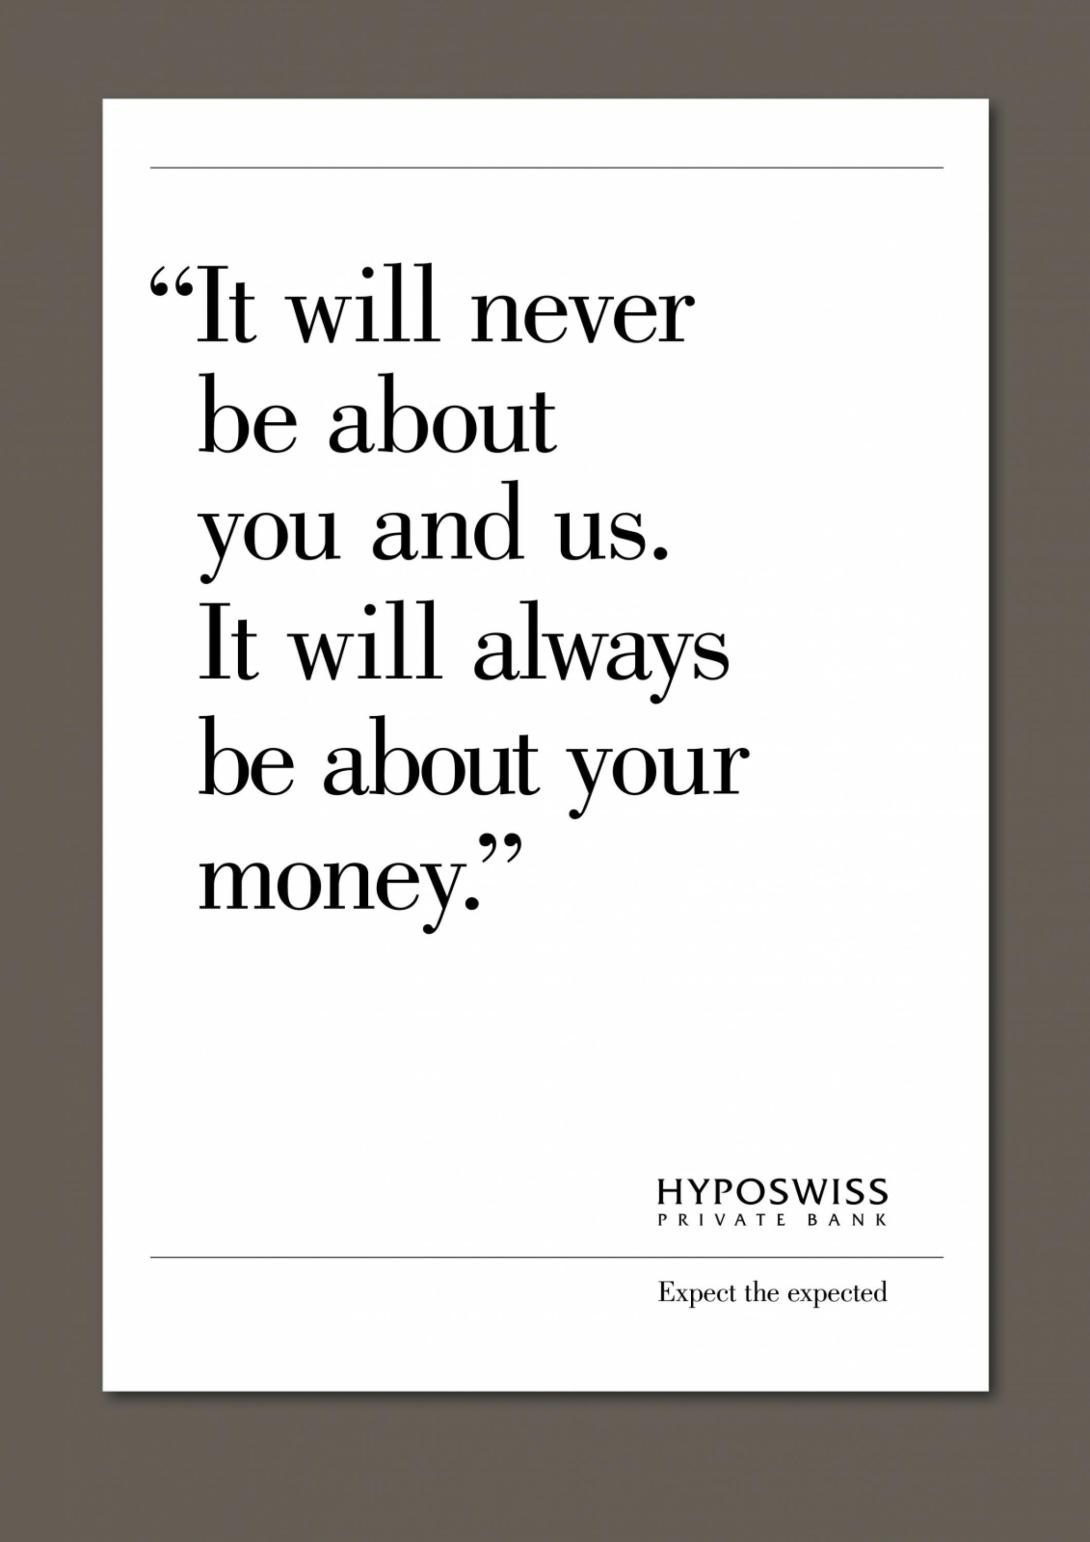 hyposwiss-private-bank-you-and-us-promises-luck-risk-fast-money-profit-less-is-not-more-print-223401-adeevee